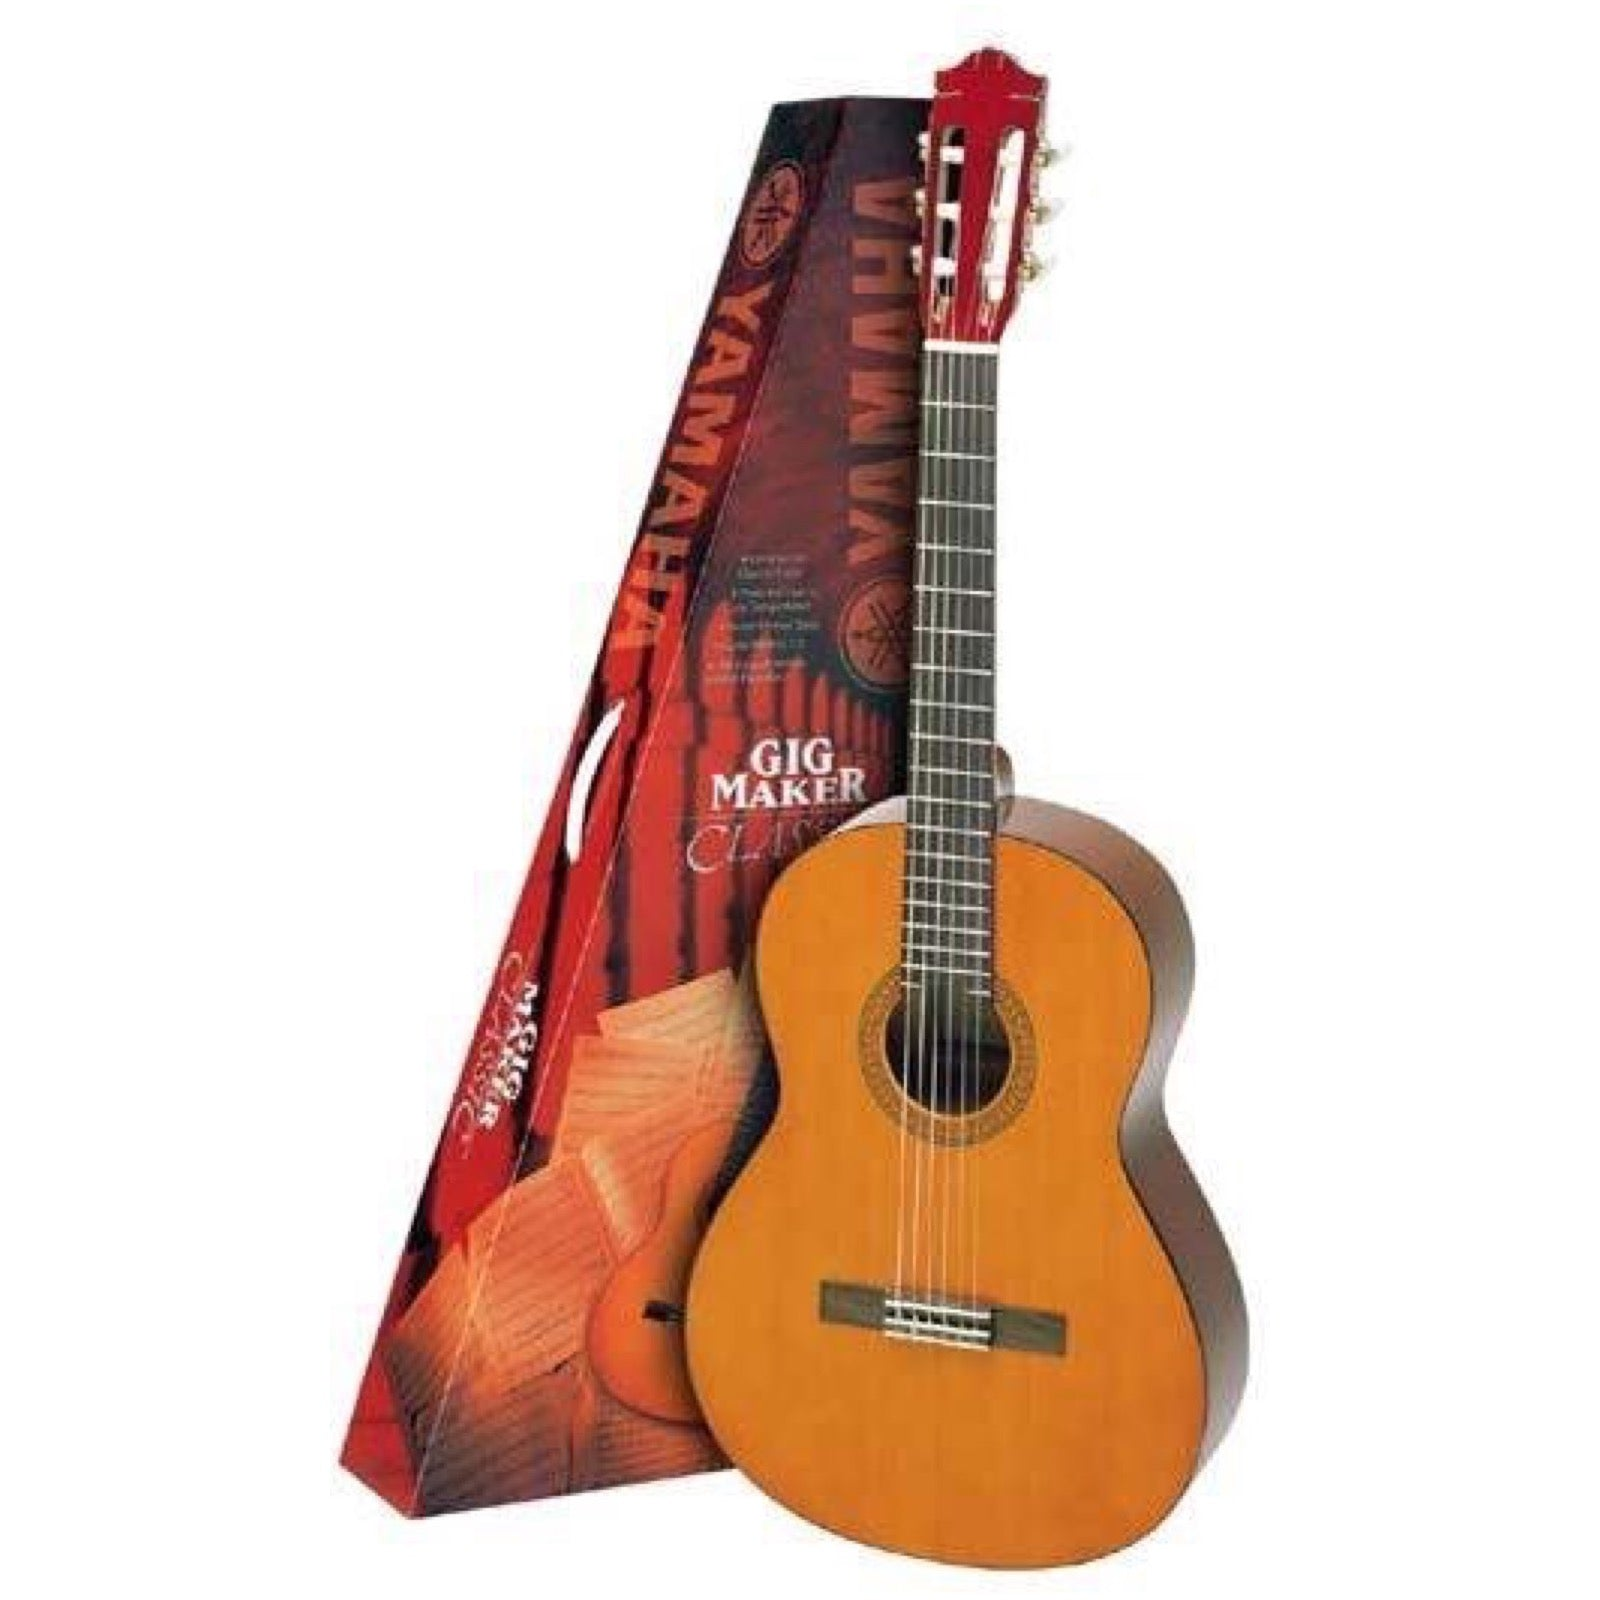 Yamaha C40 Classical Acoustic Guitar Package, with Guitar and Case